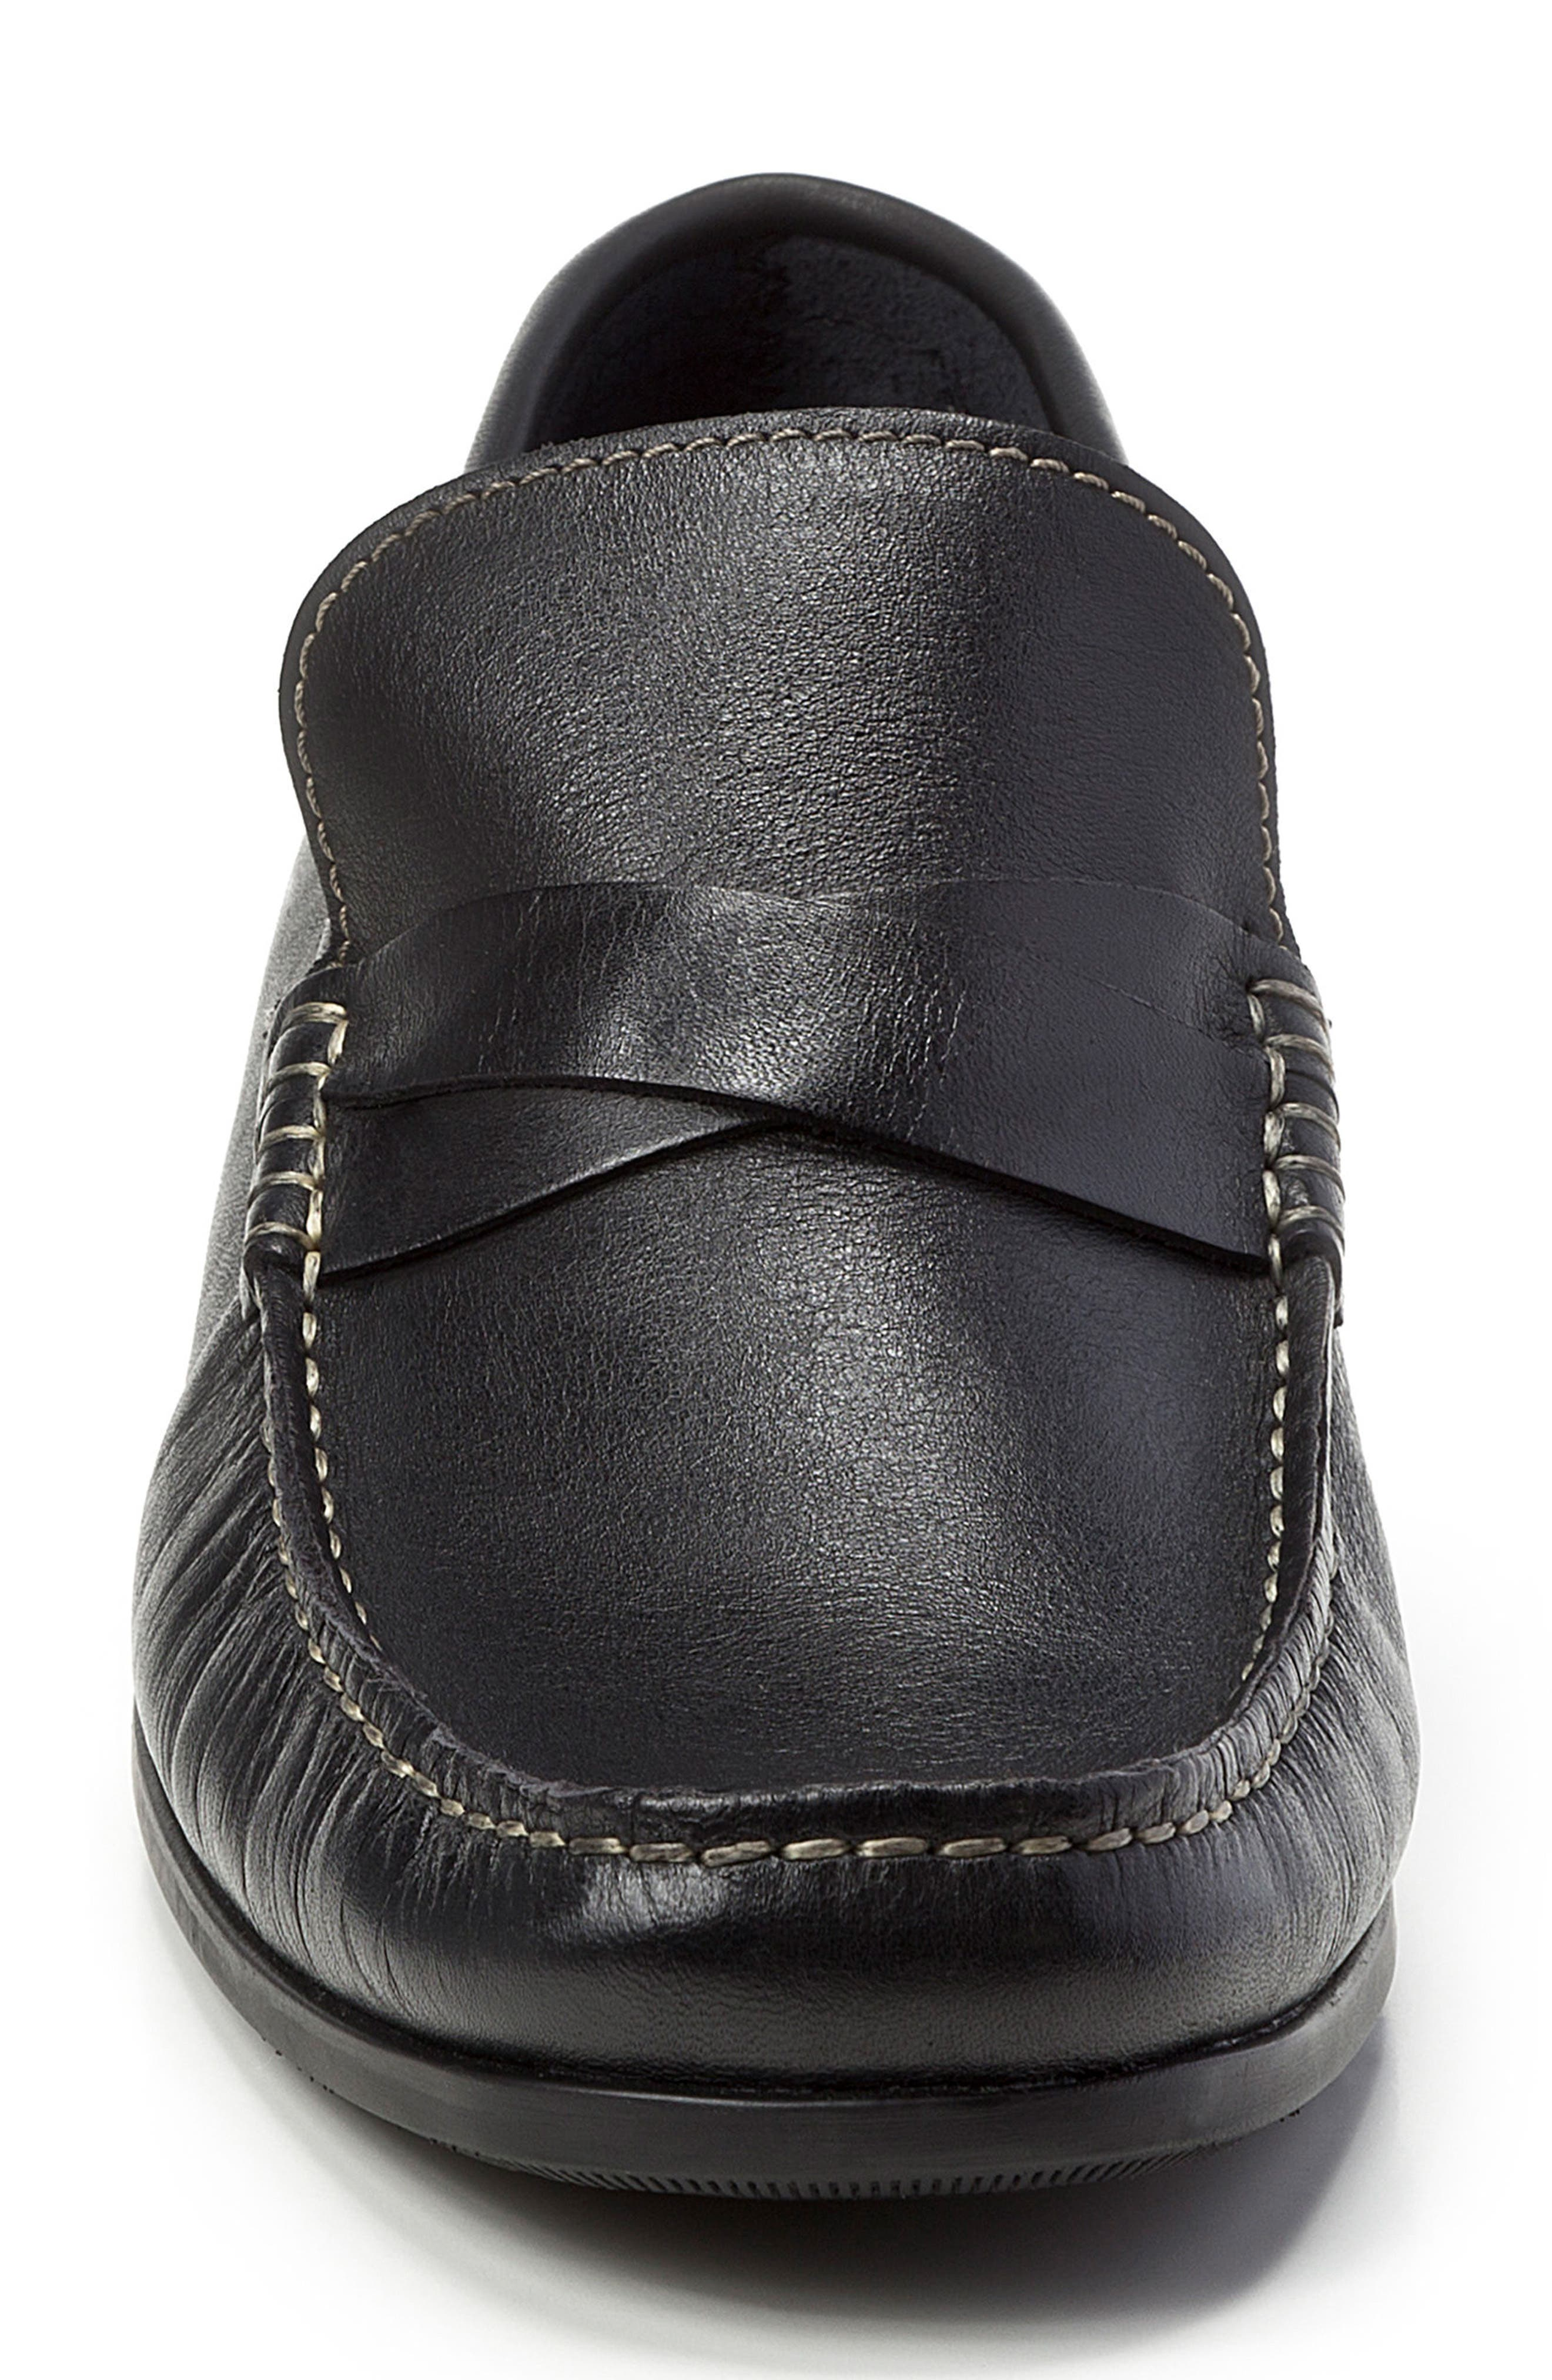 Abruzo Cross Strap Loafer,                             Alternate thumbnail 4, color,                             Black